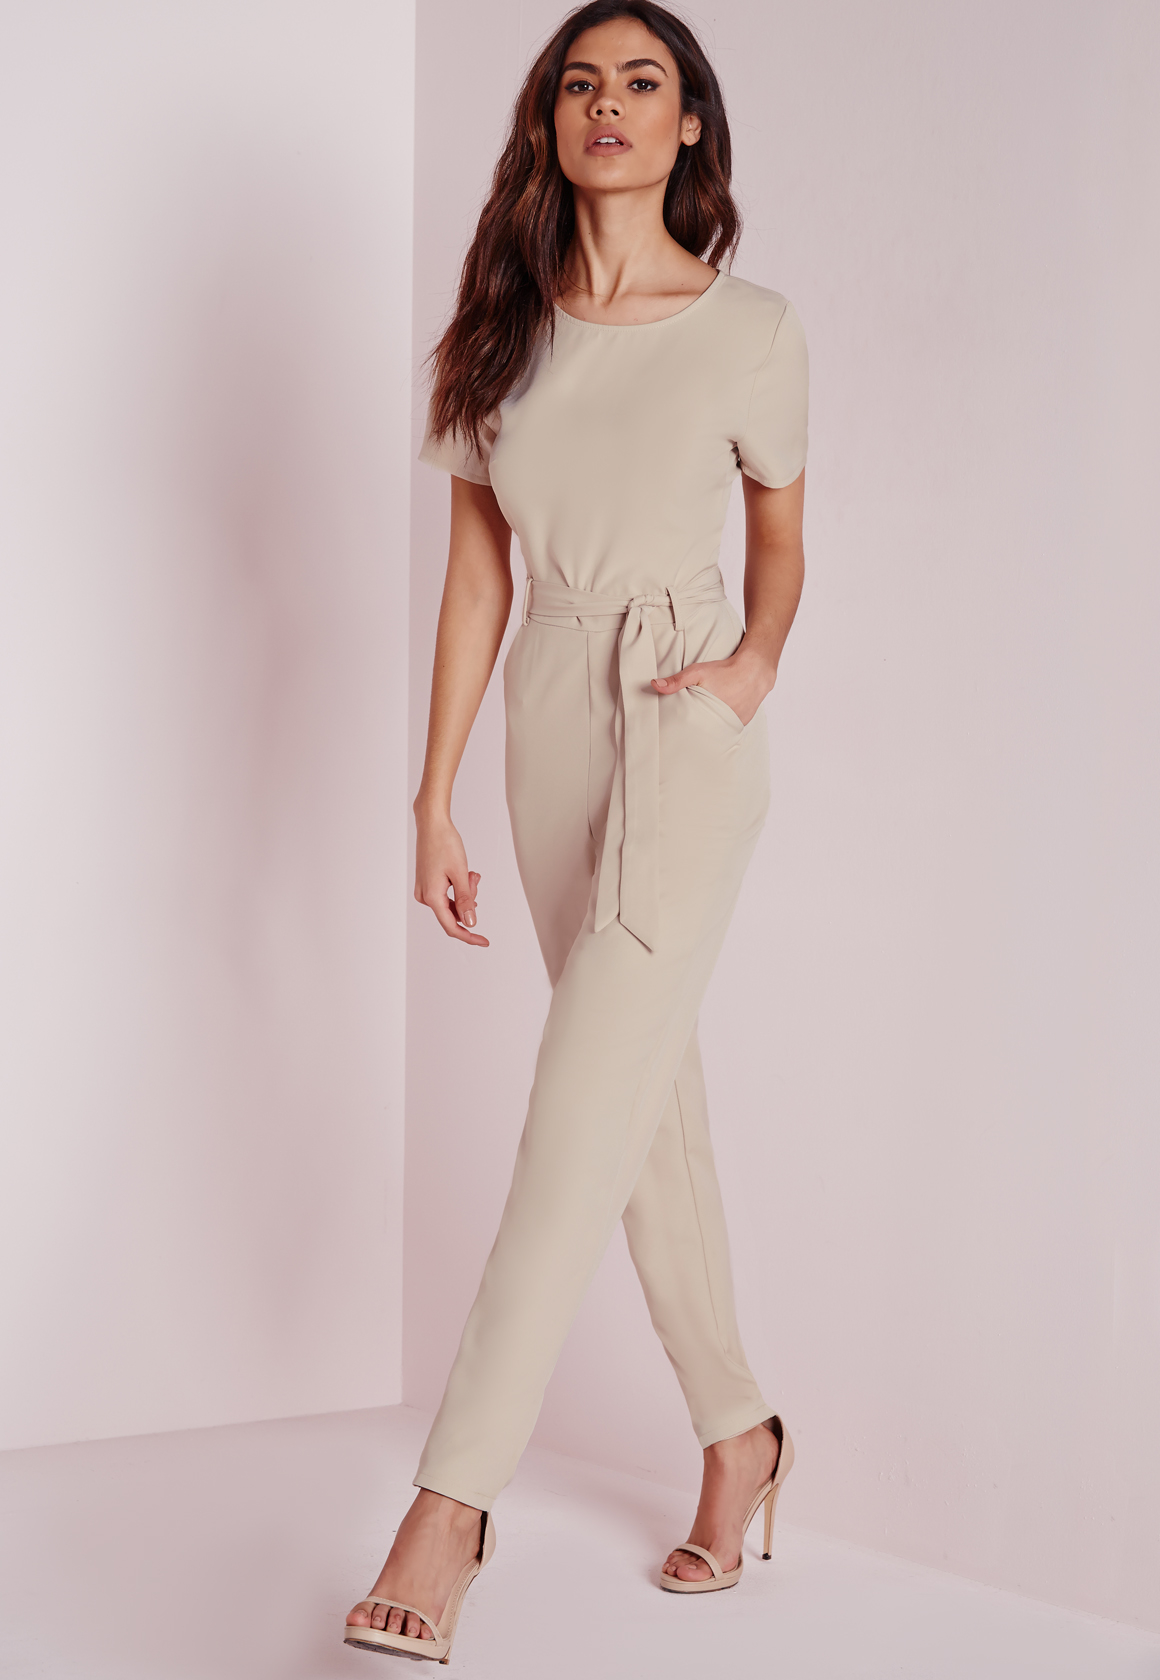 456e44297153 Lyst - Missguided Tie Front T-shirt Jumpsuit Nude in White